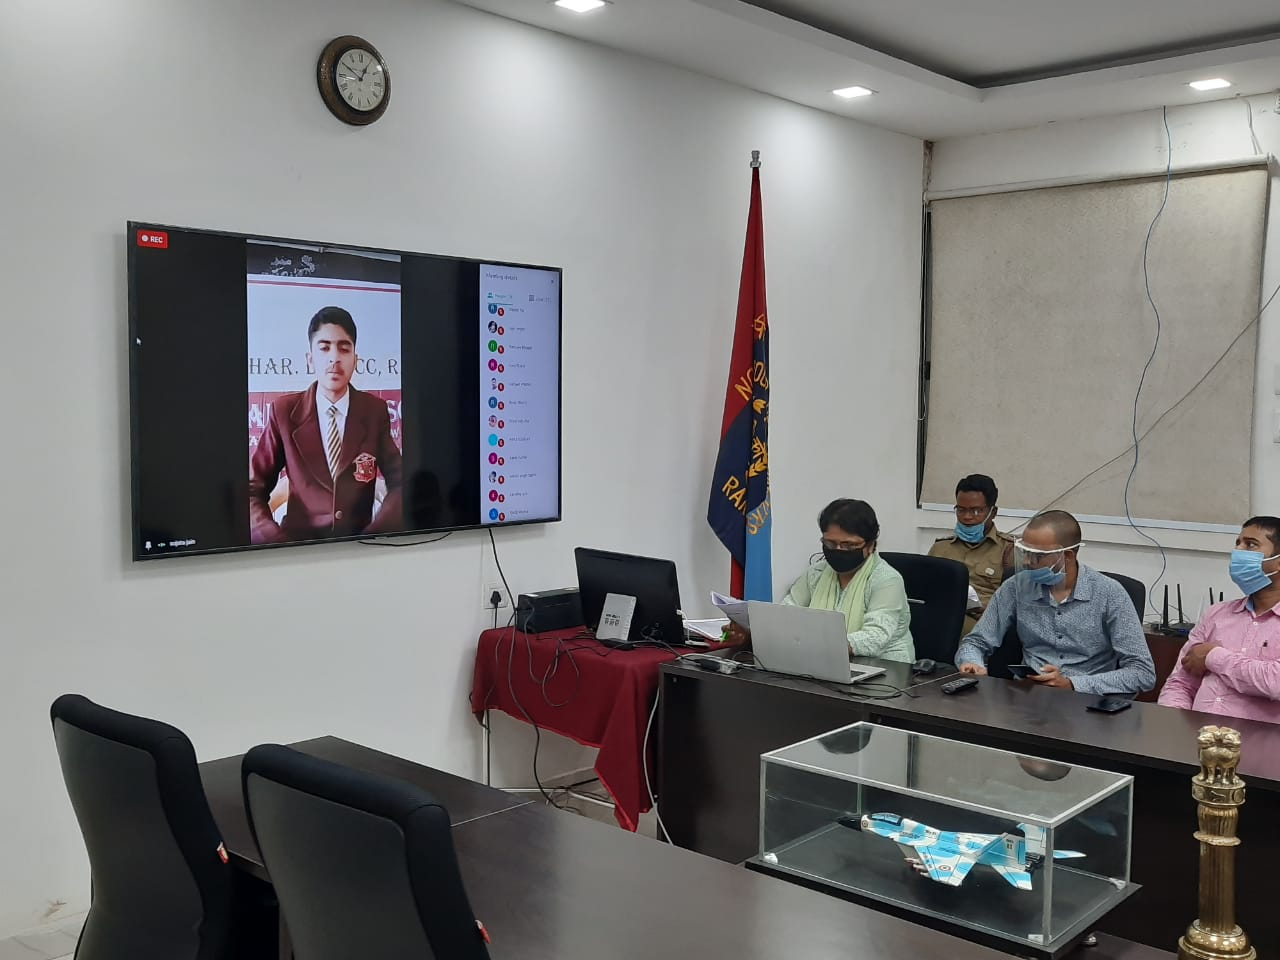 19-jharkhand-battalion-ncc-ranchi-organizes-webinar-on-kargil-day